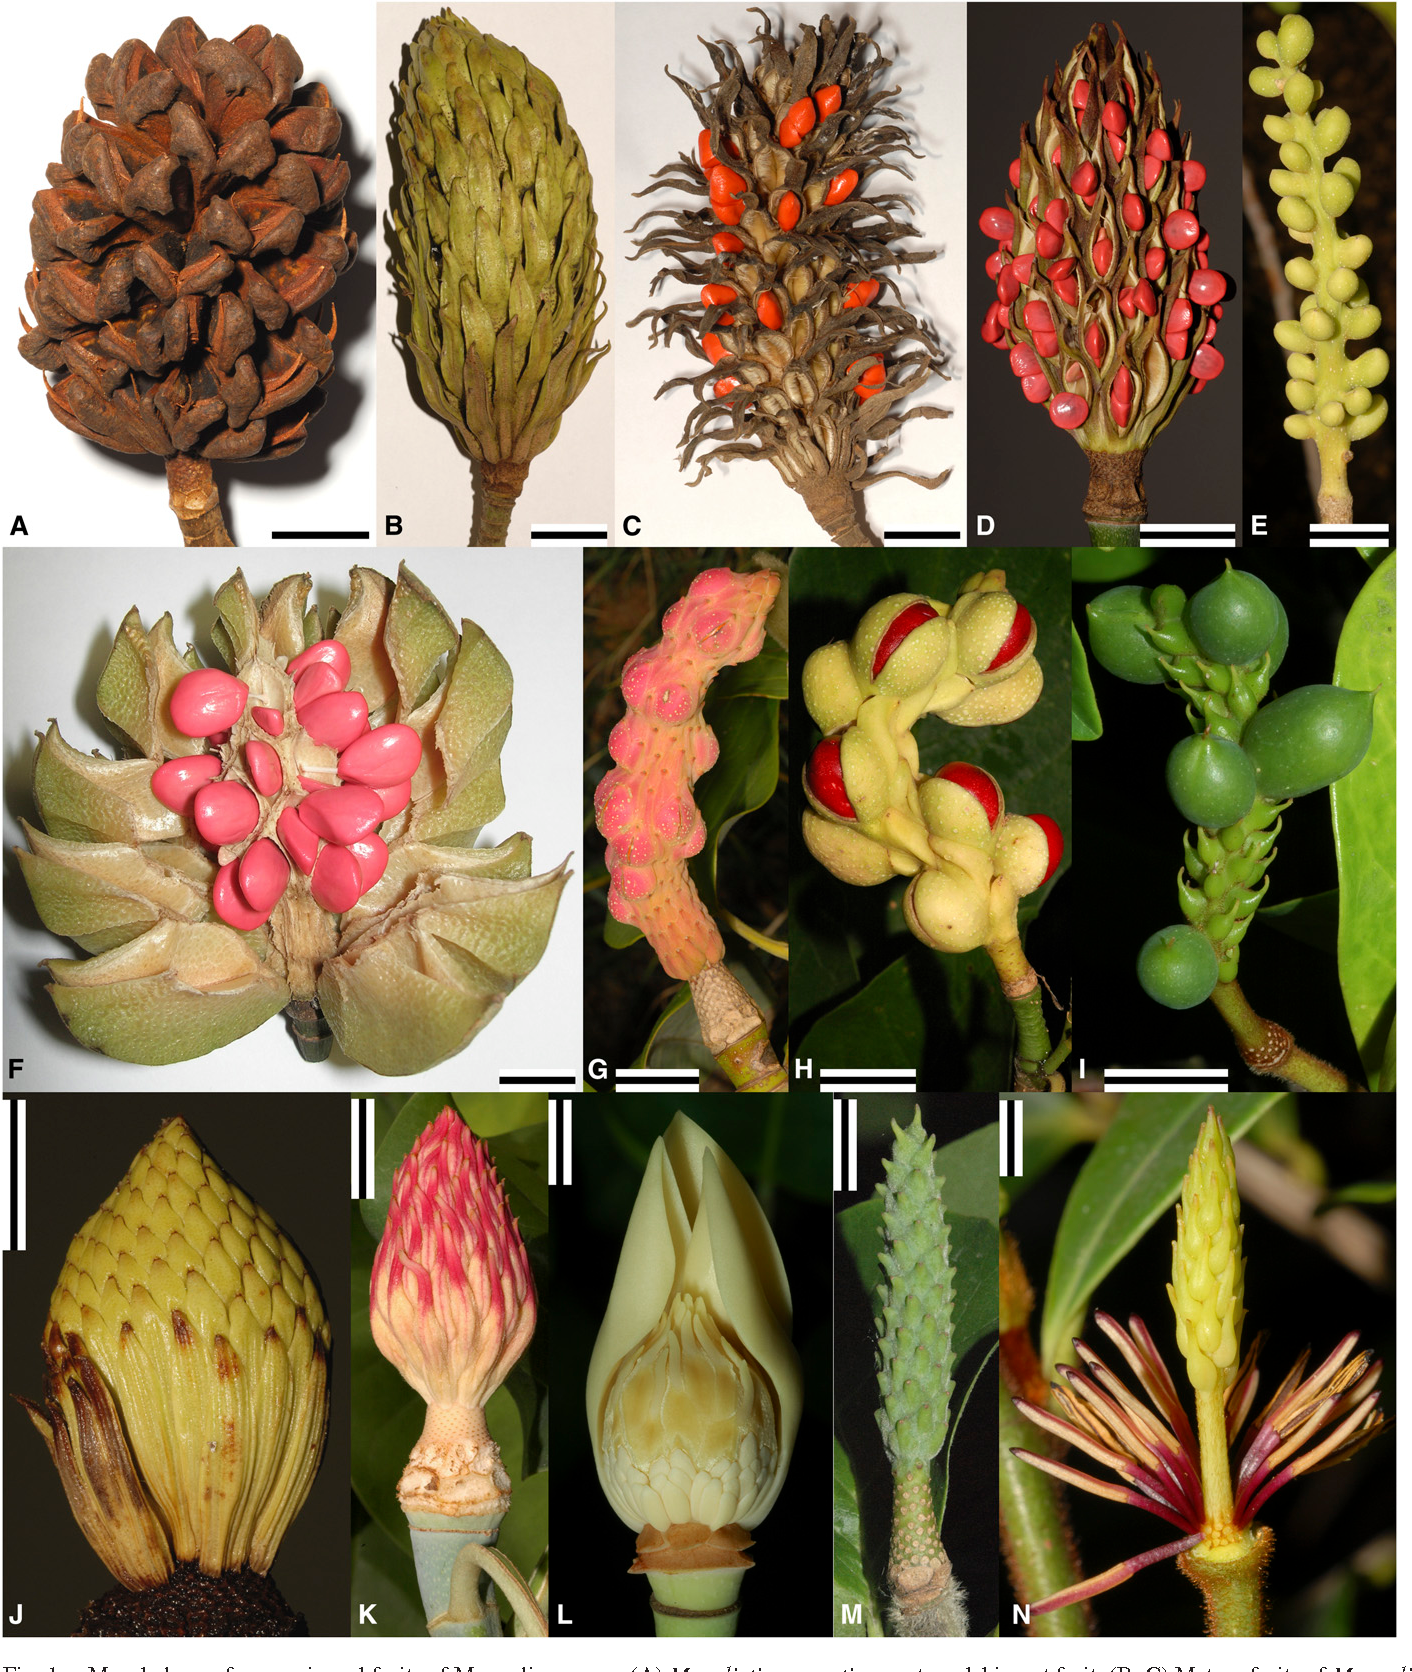 Figure 1 From Fruit Structure In Magnoliaceae Sl And Archaeanthus